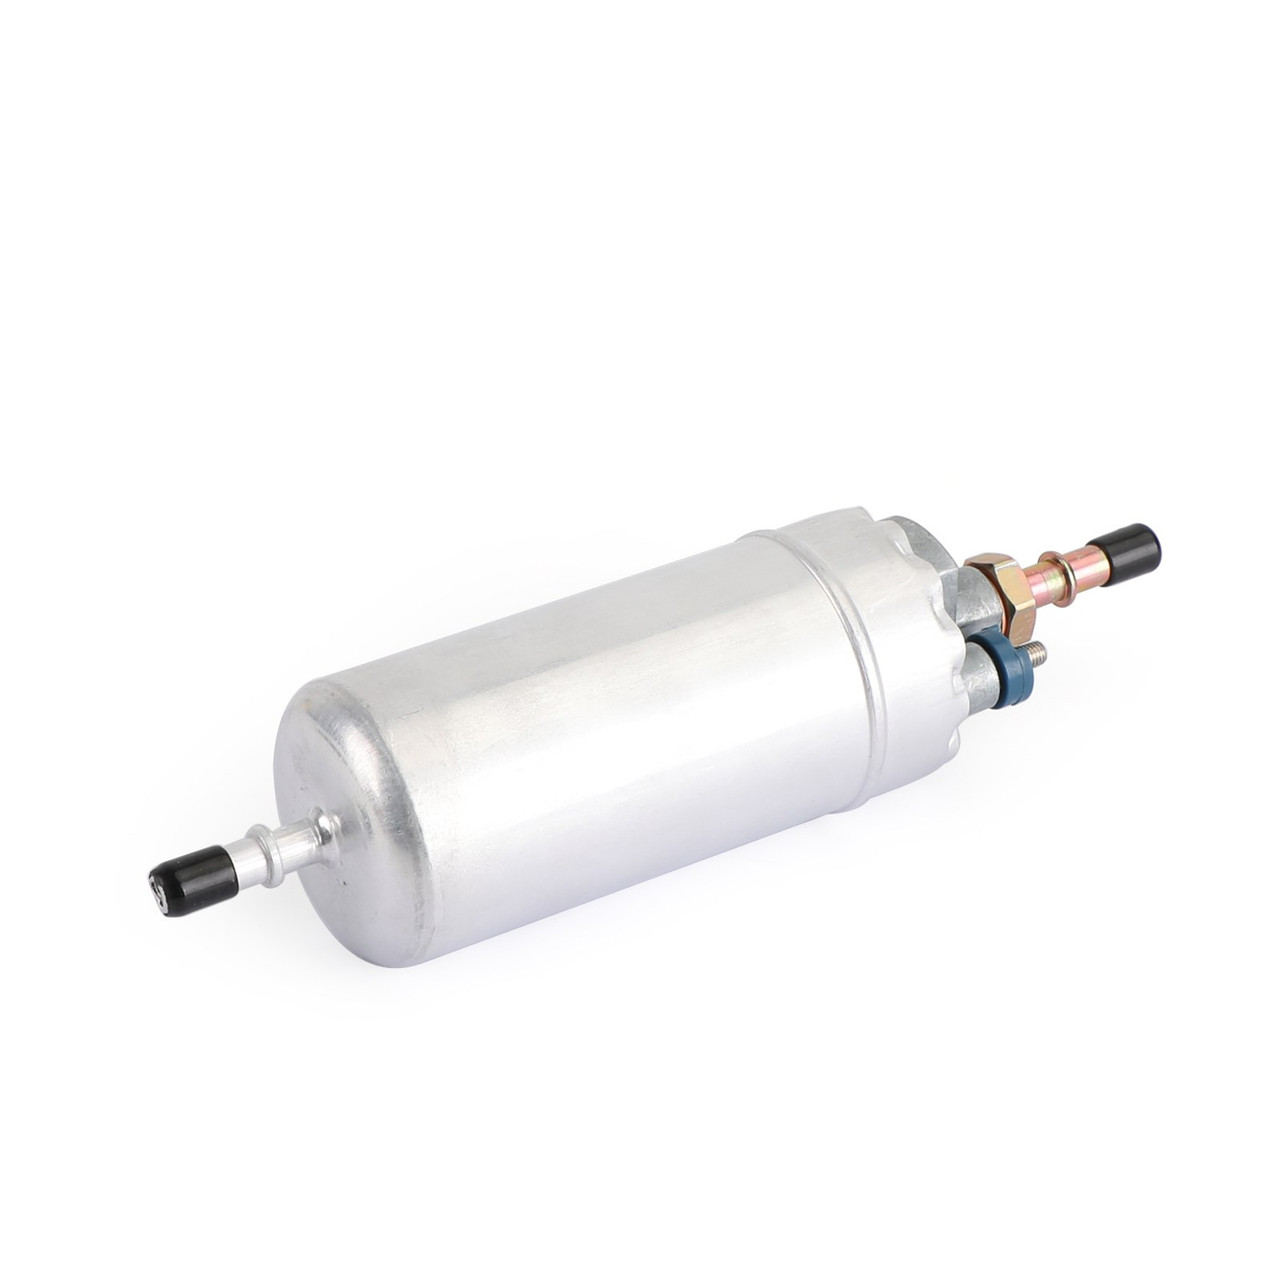 Fuel Oil Engine Electric Fuel Pump 0580464075 Fit For Ford Mondeo MK3 2.0 2.2